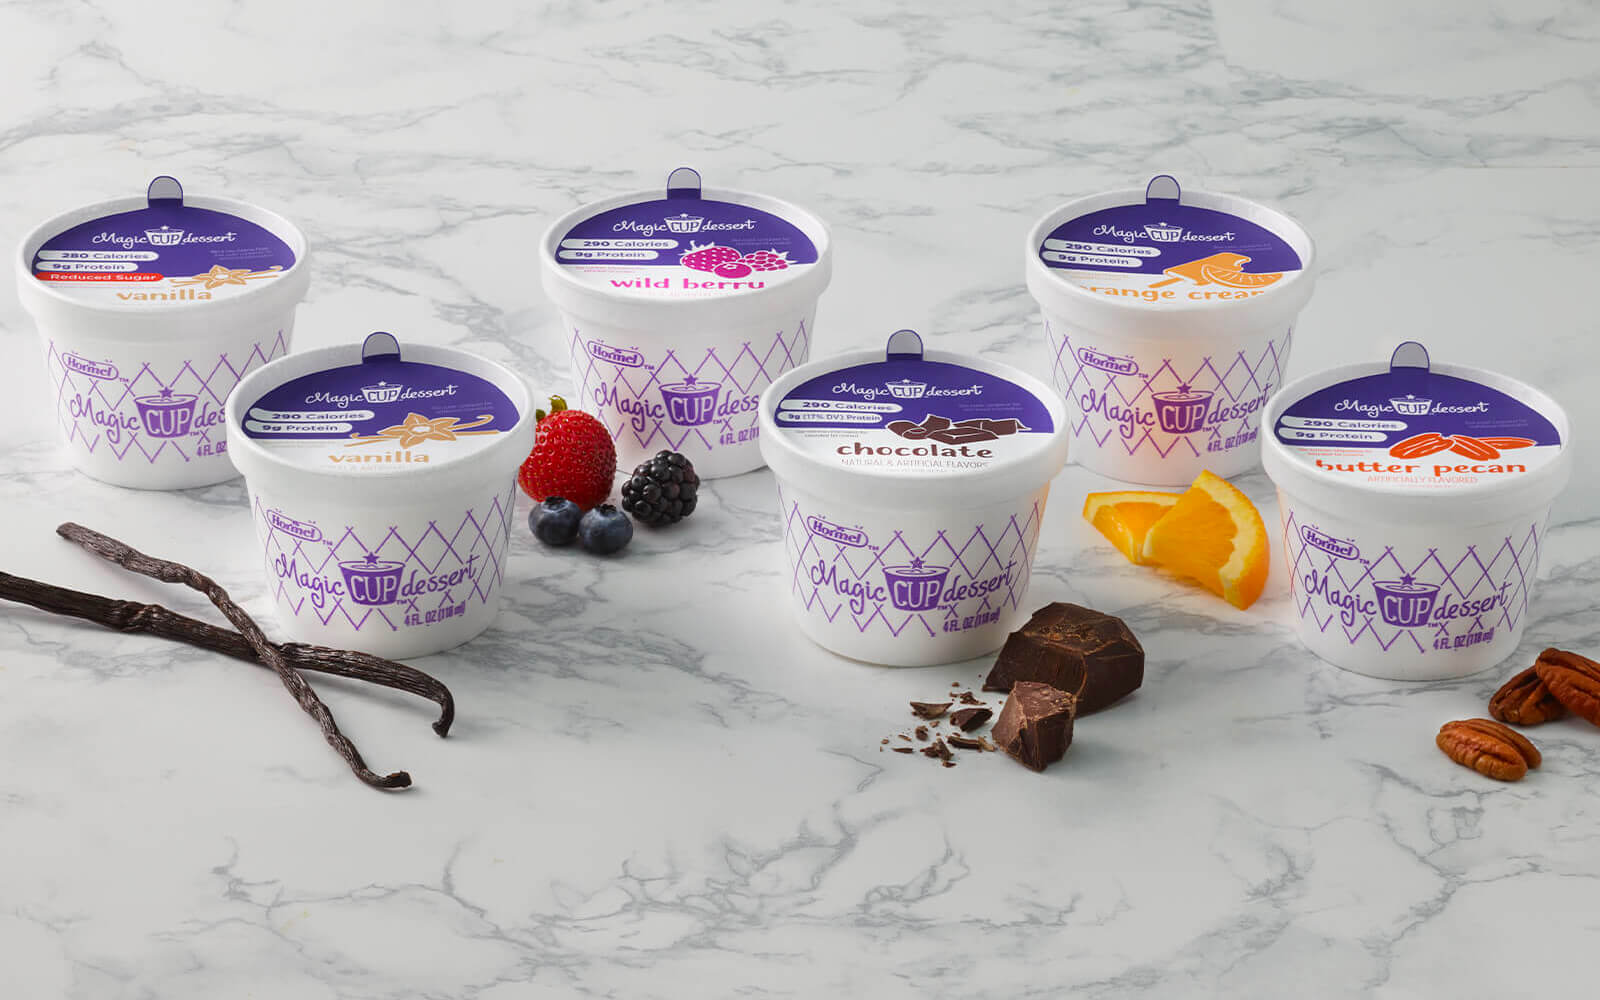 Magic cup variety pack flavors